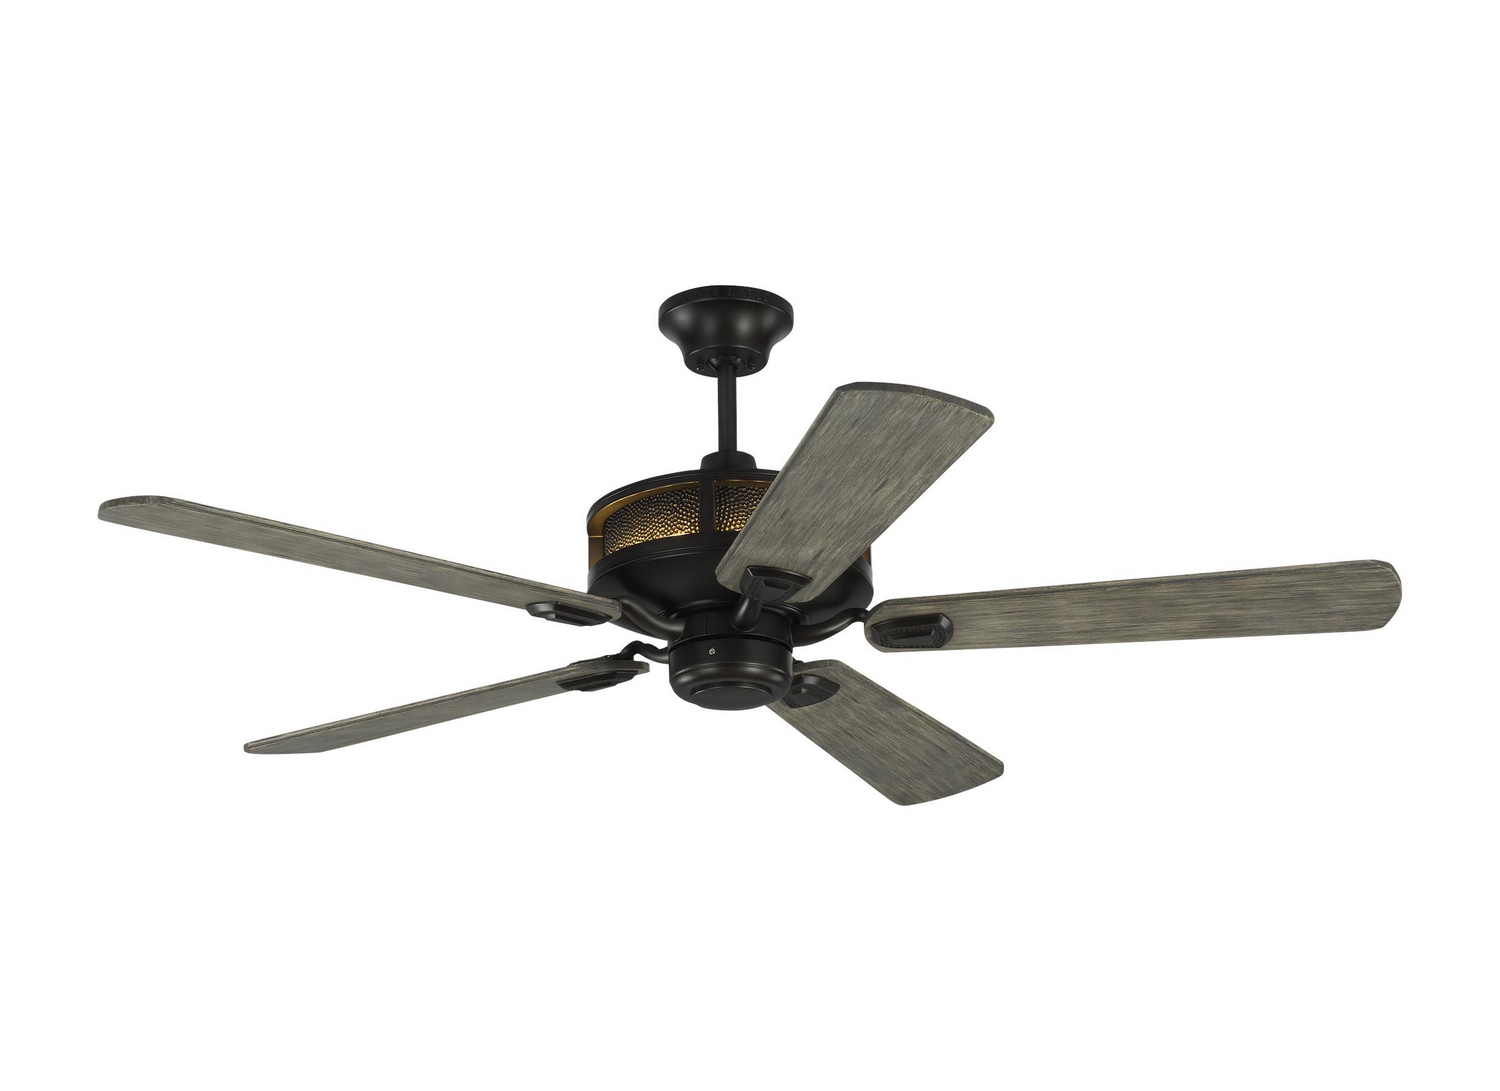 56 inchCeiling Fan from the Artizan collection by Monte Carlo 5AZR56AGP